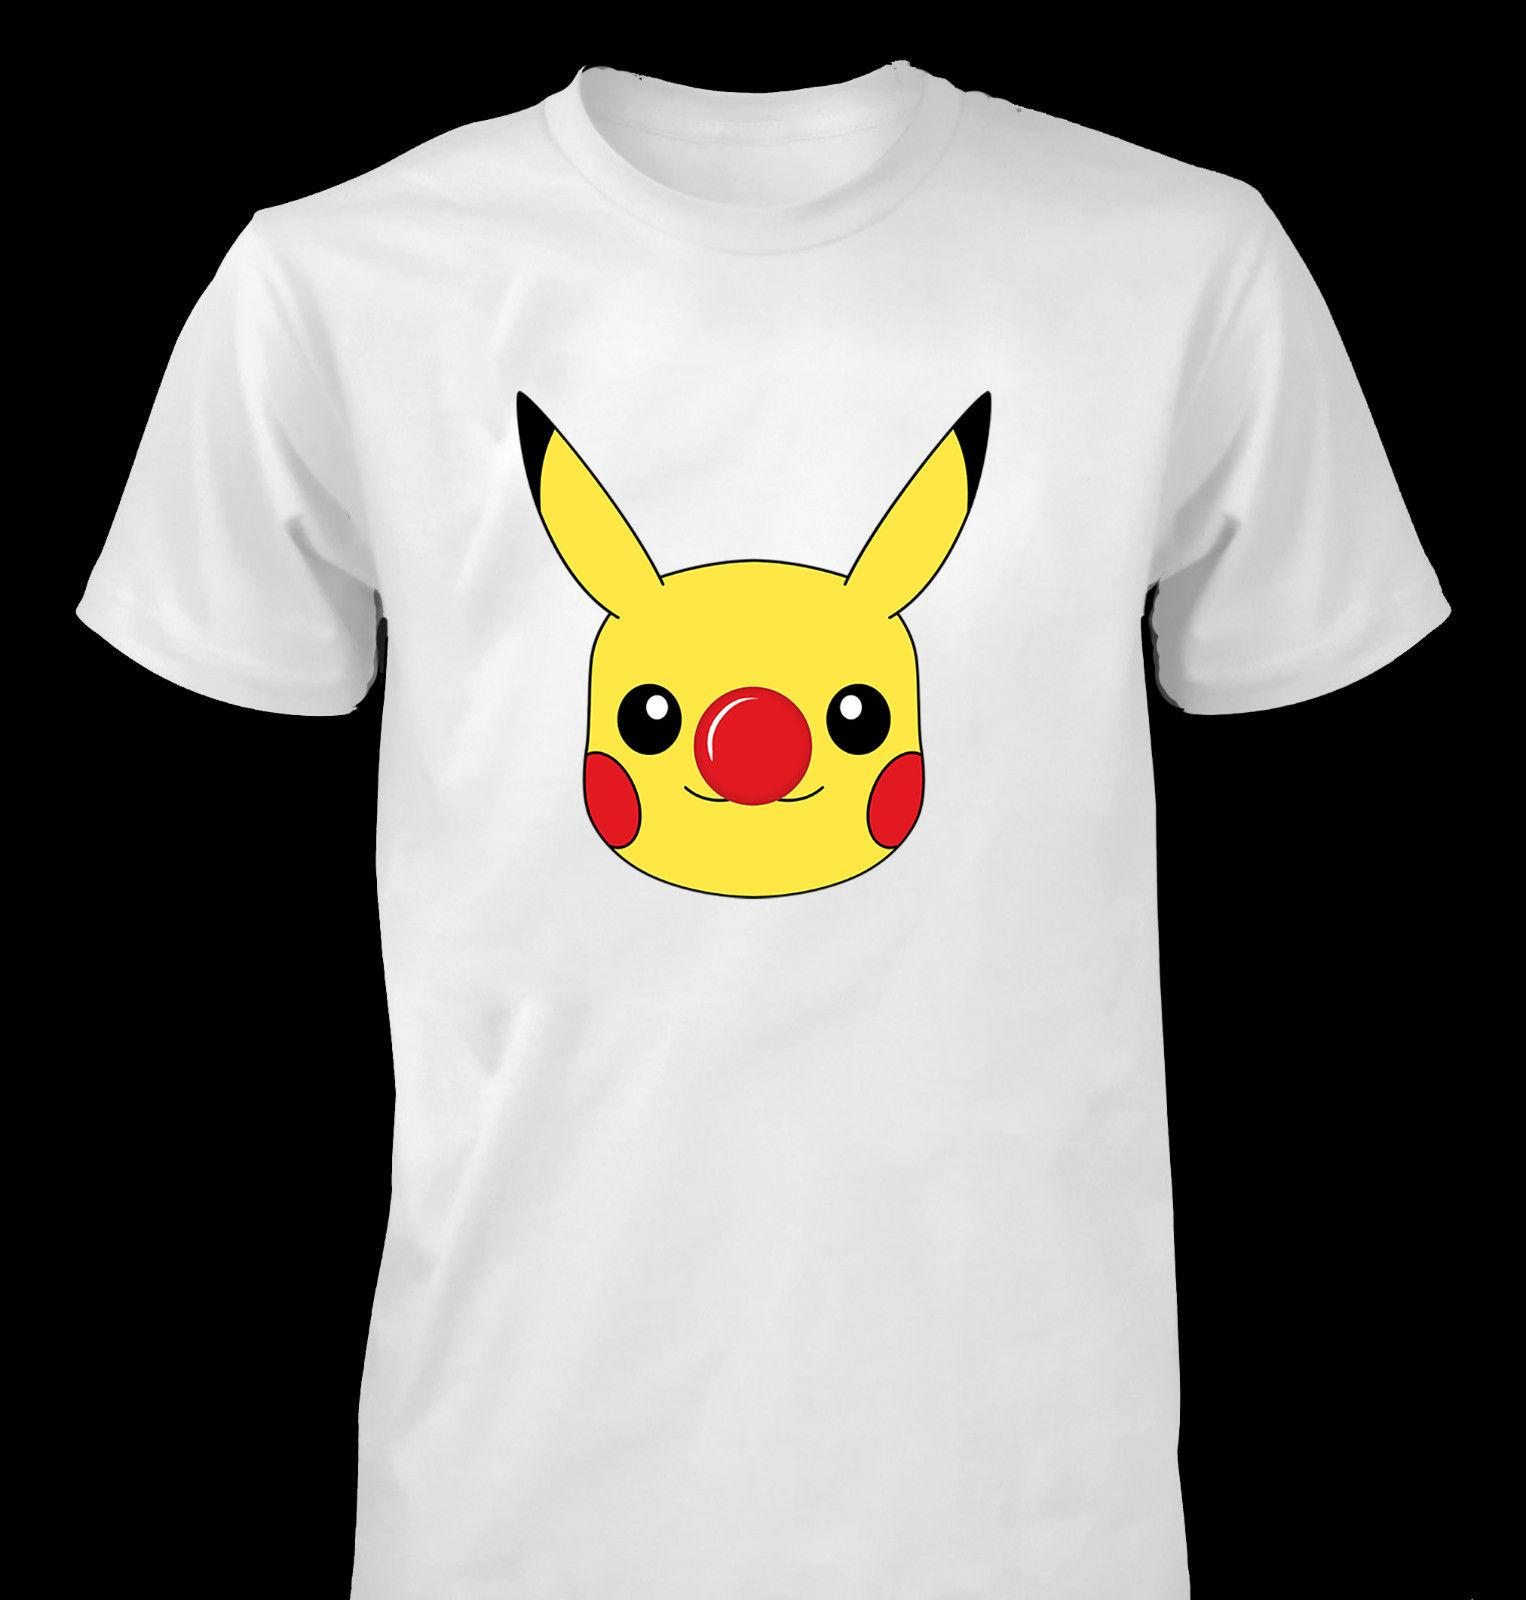 42533293 RED NOSE DAY Pikachu COMIC RELIEF KIDS BOYS MEN WOMEN T SHIRT Funny Unisex  Casual Tshirt Top Buy Tee Top T Shirt Sites From Redleaderclothing, ...